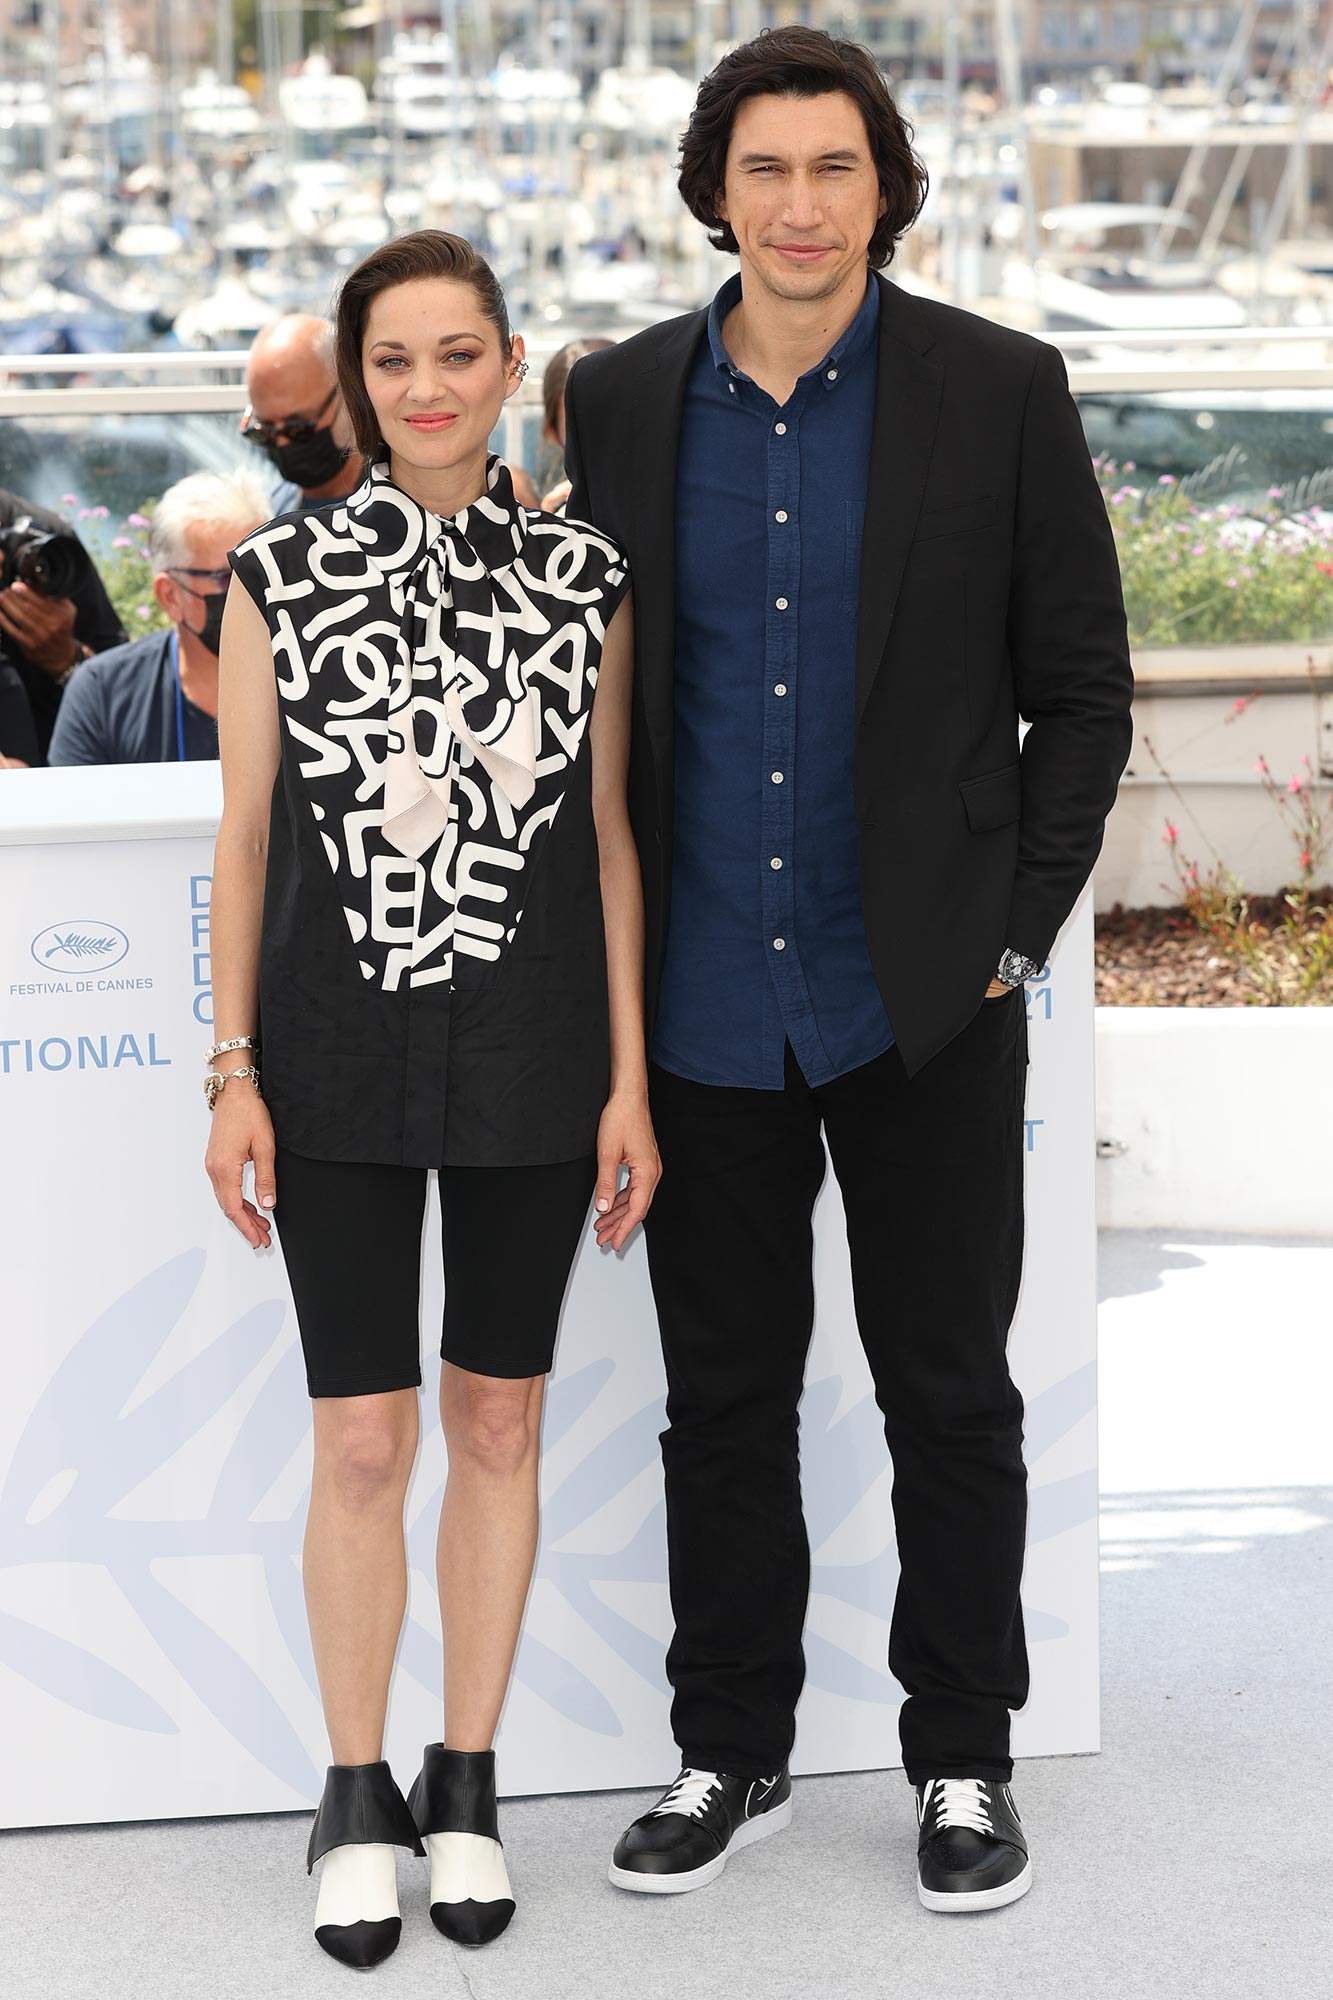 Cannes 2021 Red Carpet - Marion Cotillard and Adam Driver